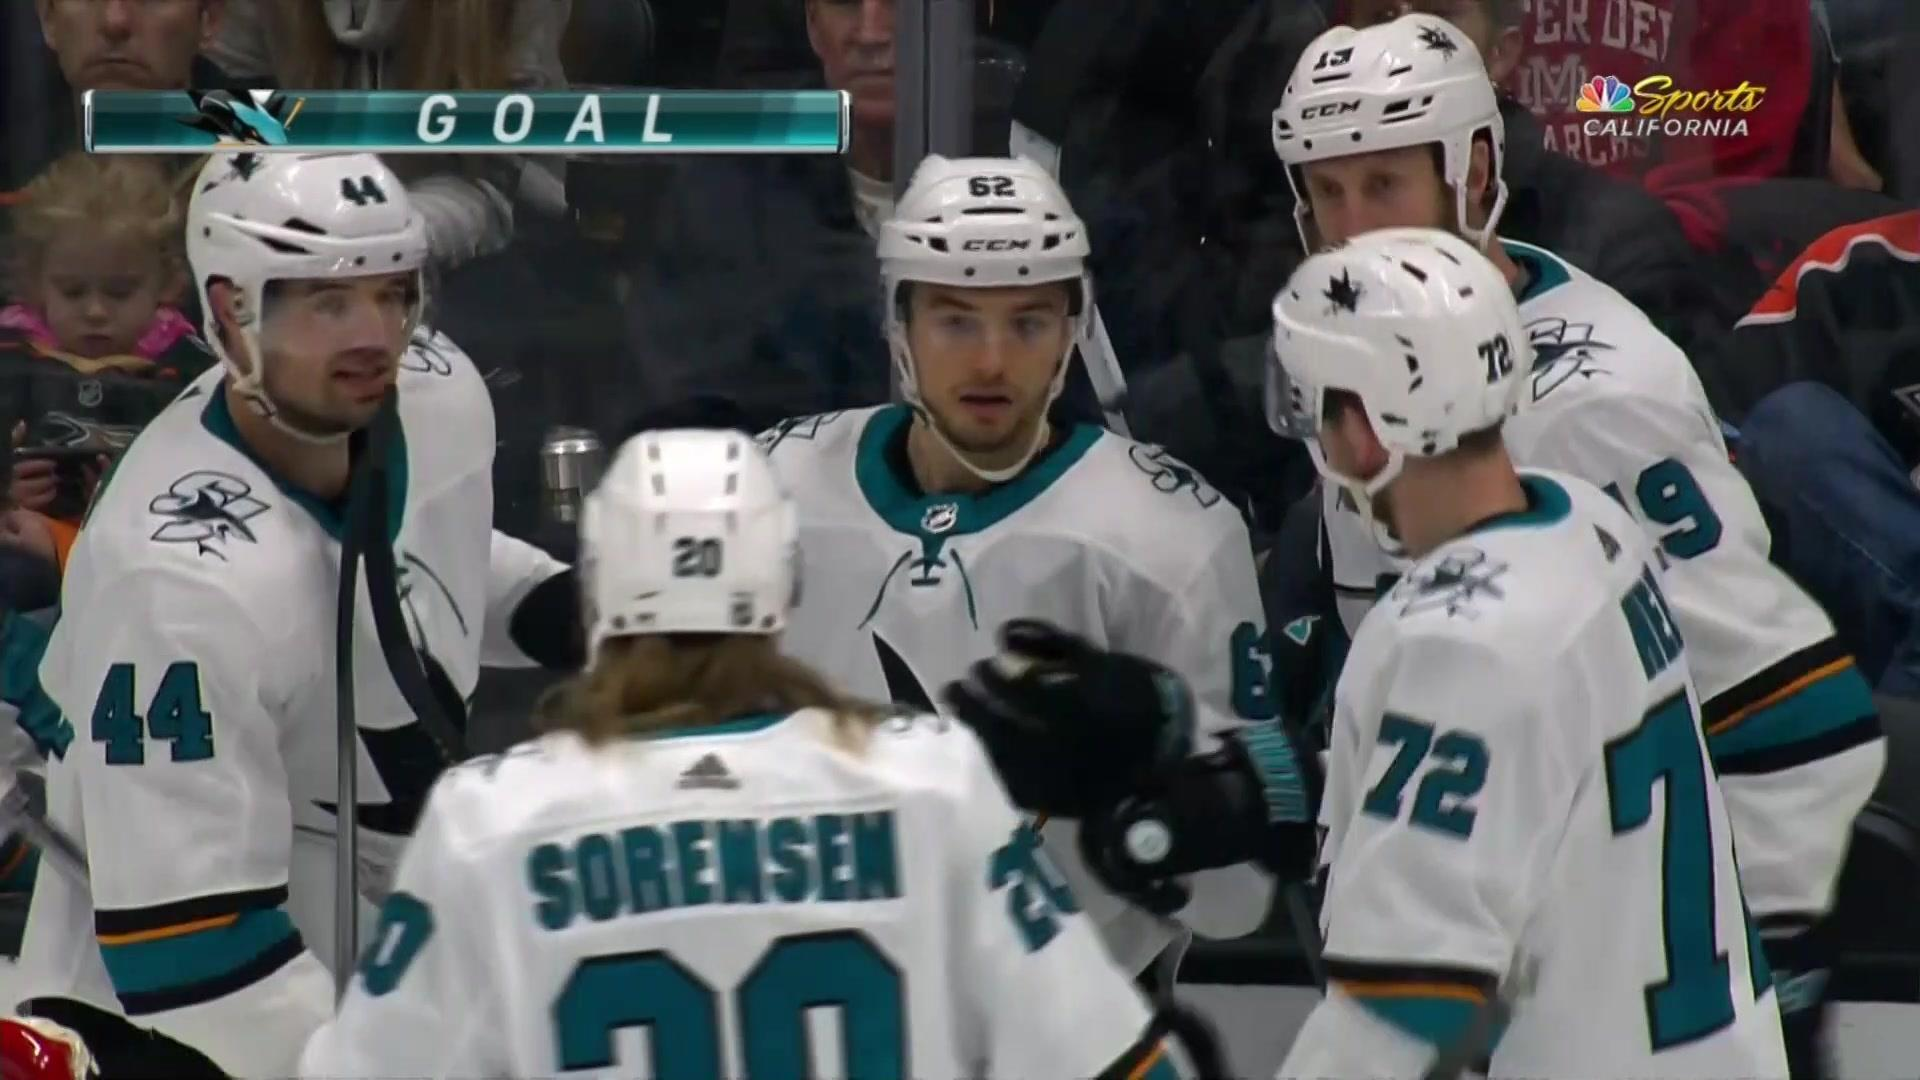 Kevin Labanc nets 10th goal in last 30 games, ties it 1-1 in Anaheim